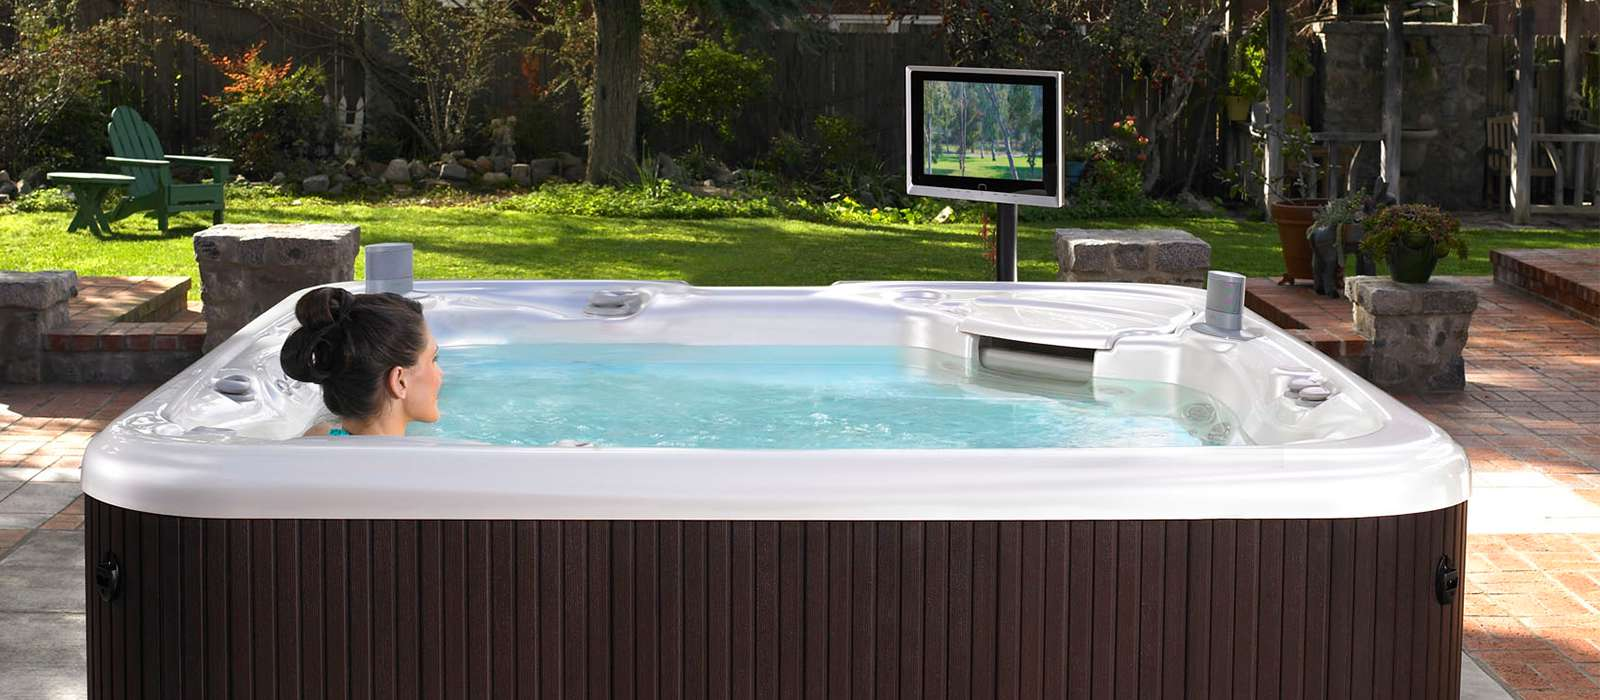 Featuring a sleek cabinet profile and multi-zone lighting, the Aria brings contemporary flair to any backyard.